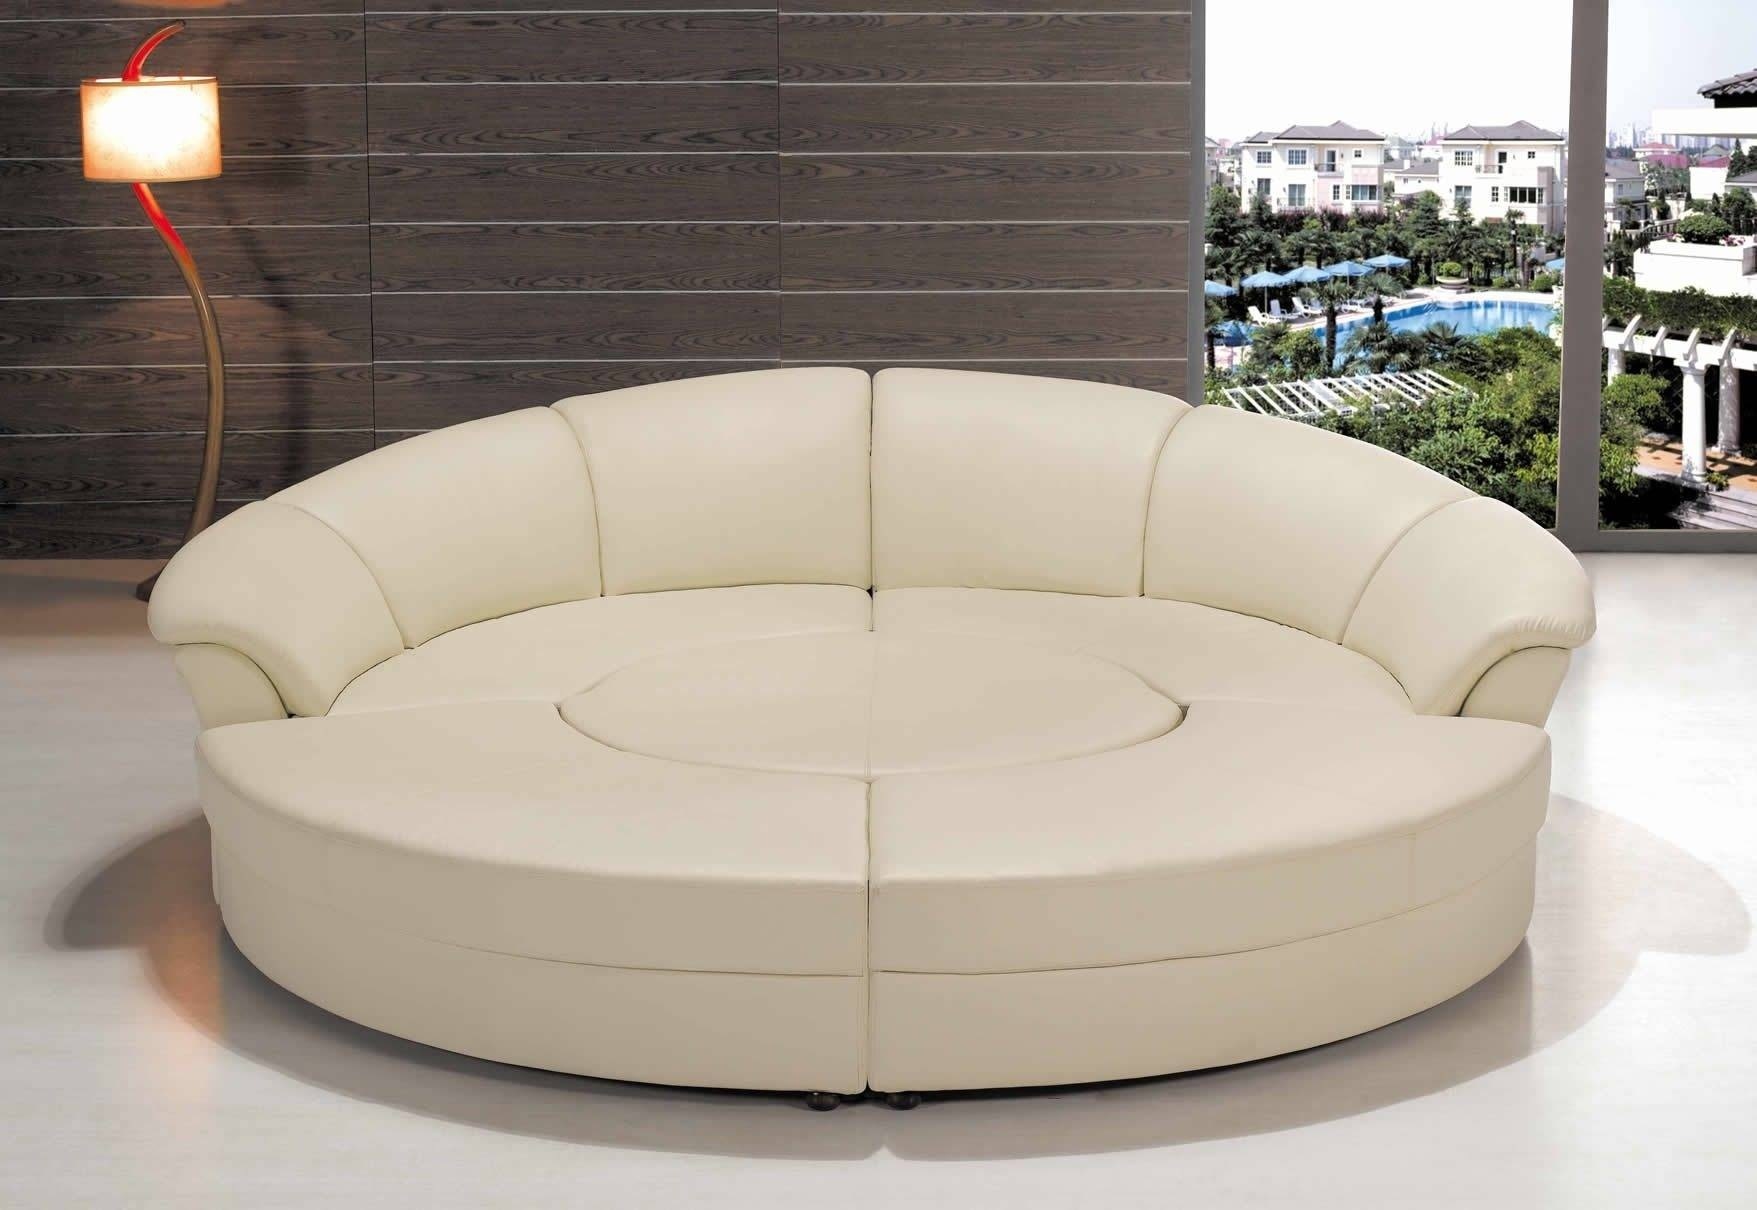 Circular Sofa Bed | Tehranmix Decoration pertaining to Round Sofas (Image 5 of 30)